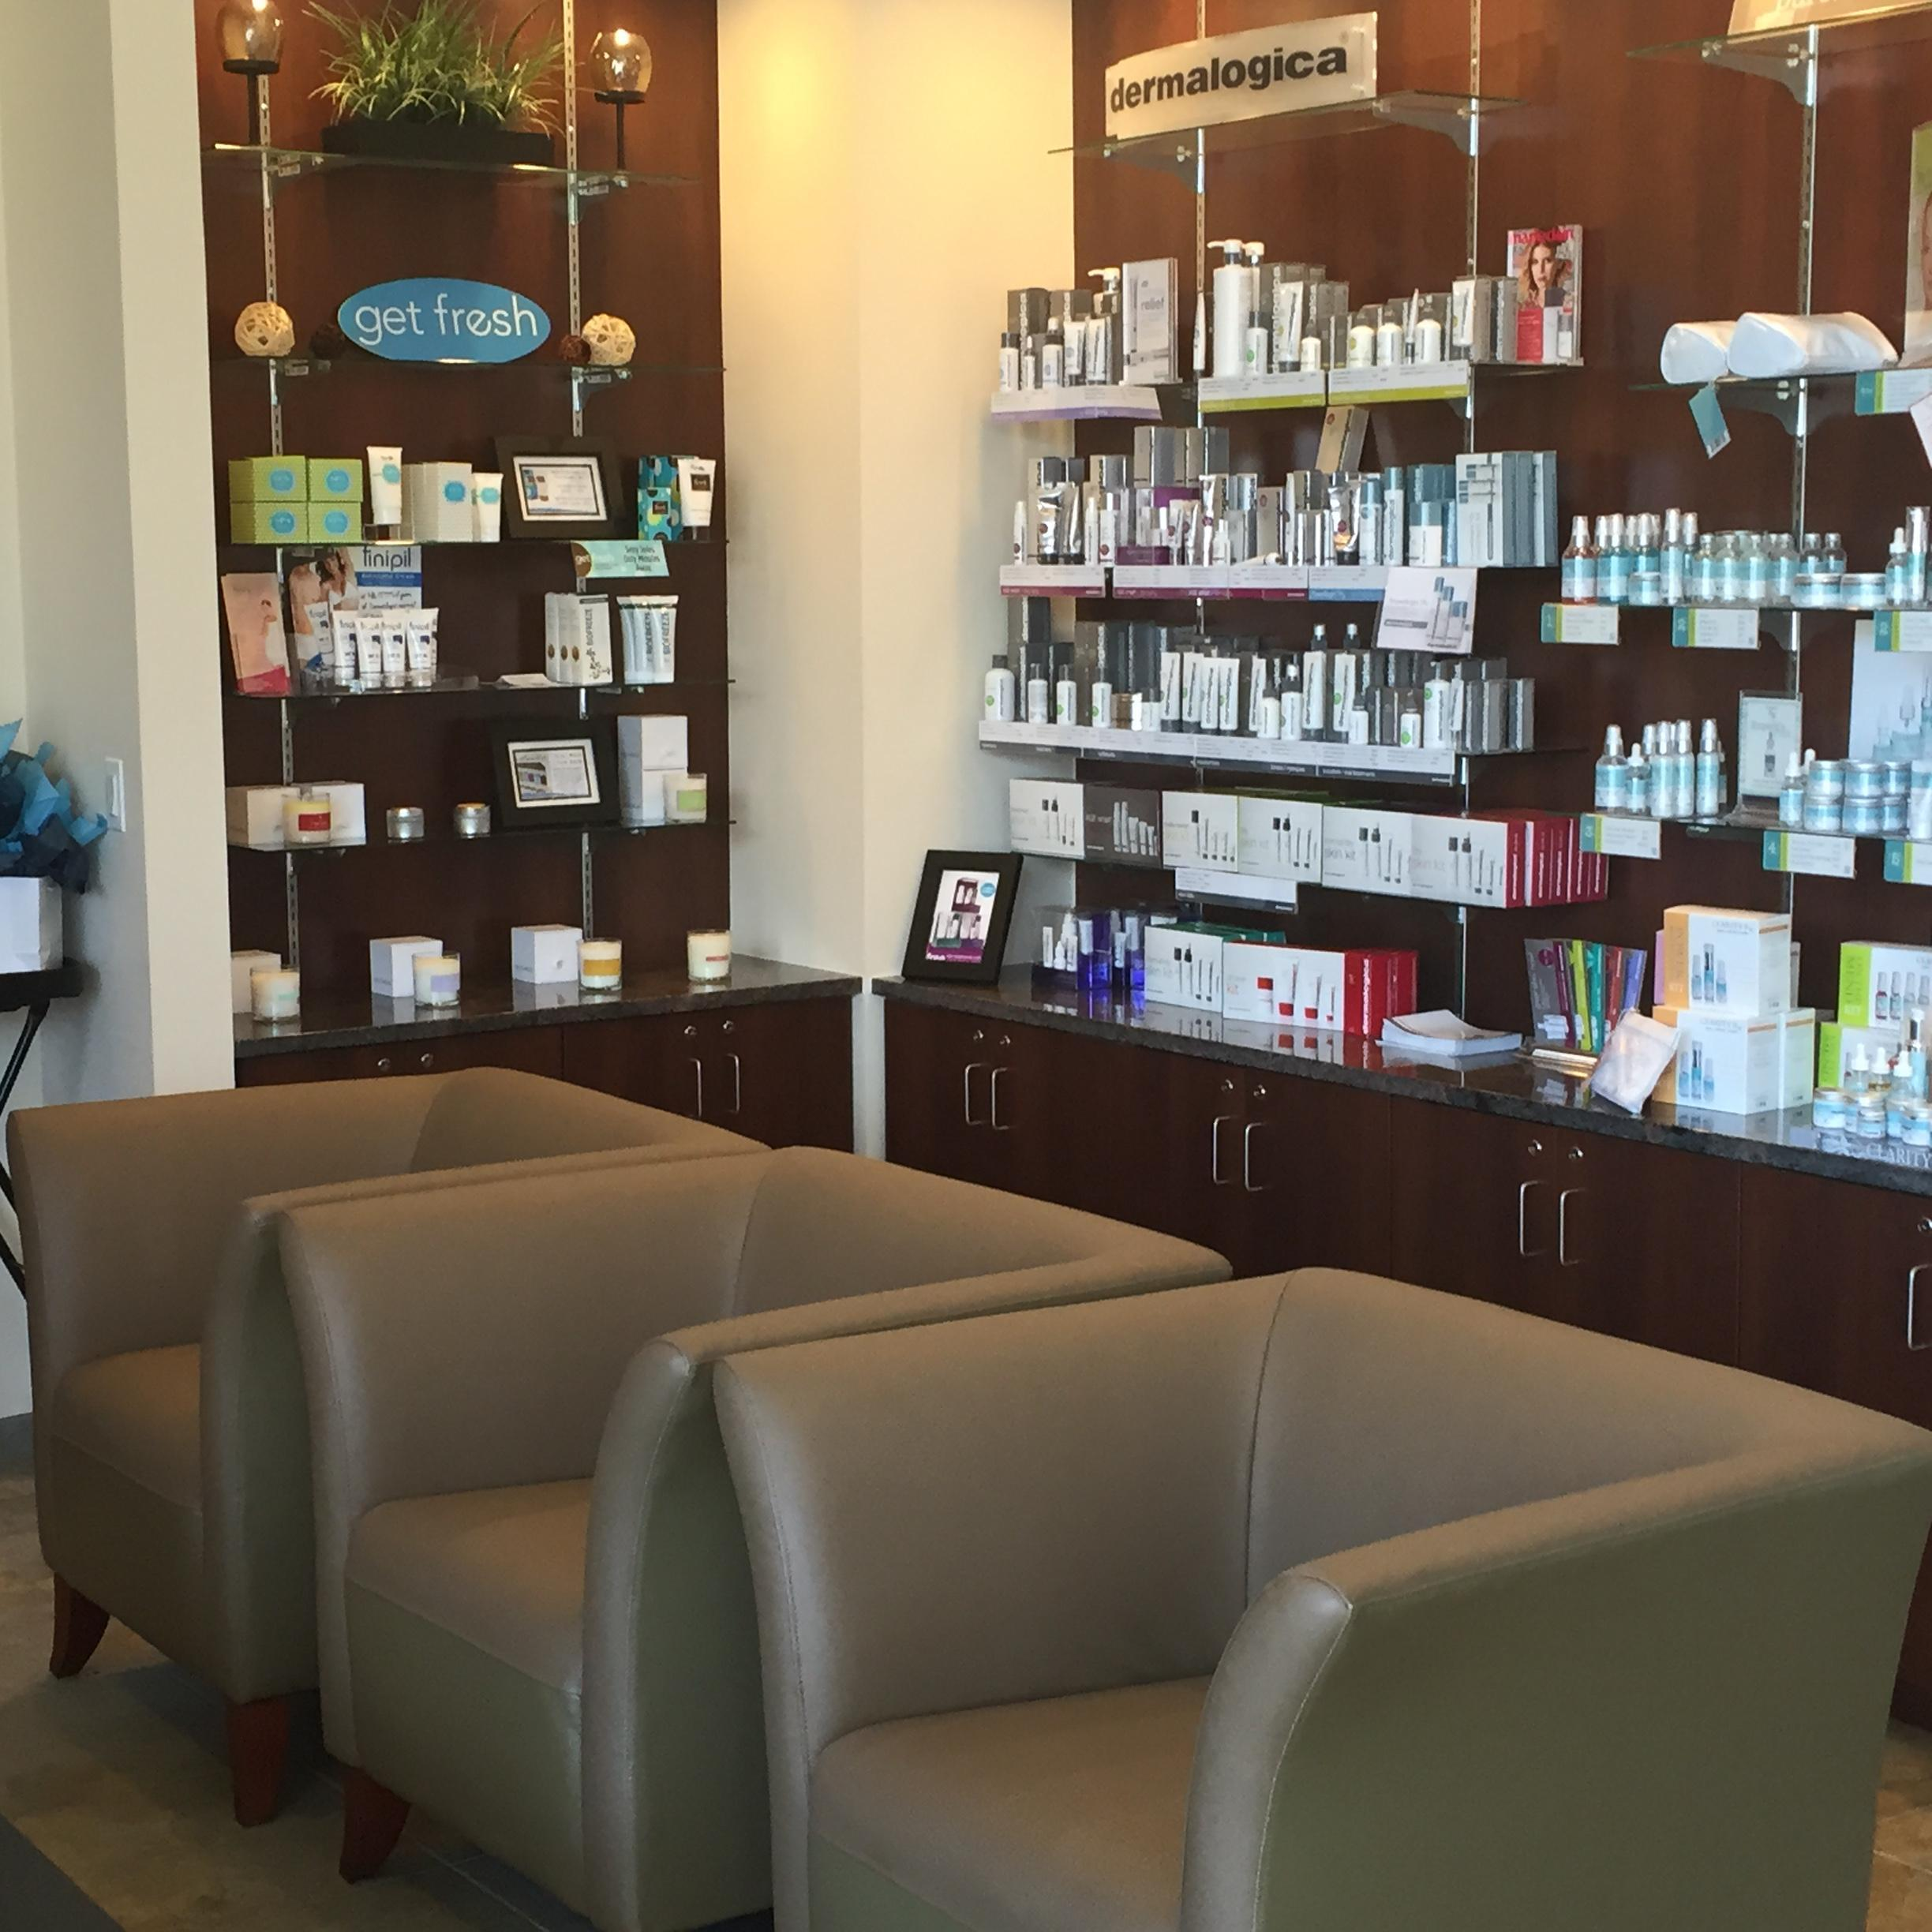 Skin Care Products for your needs